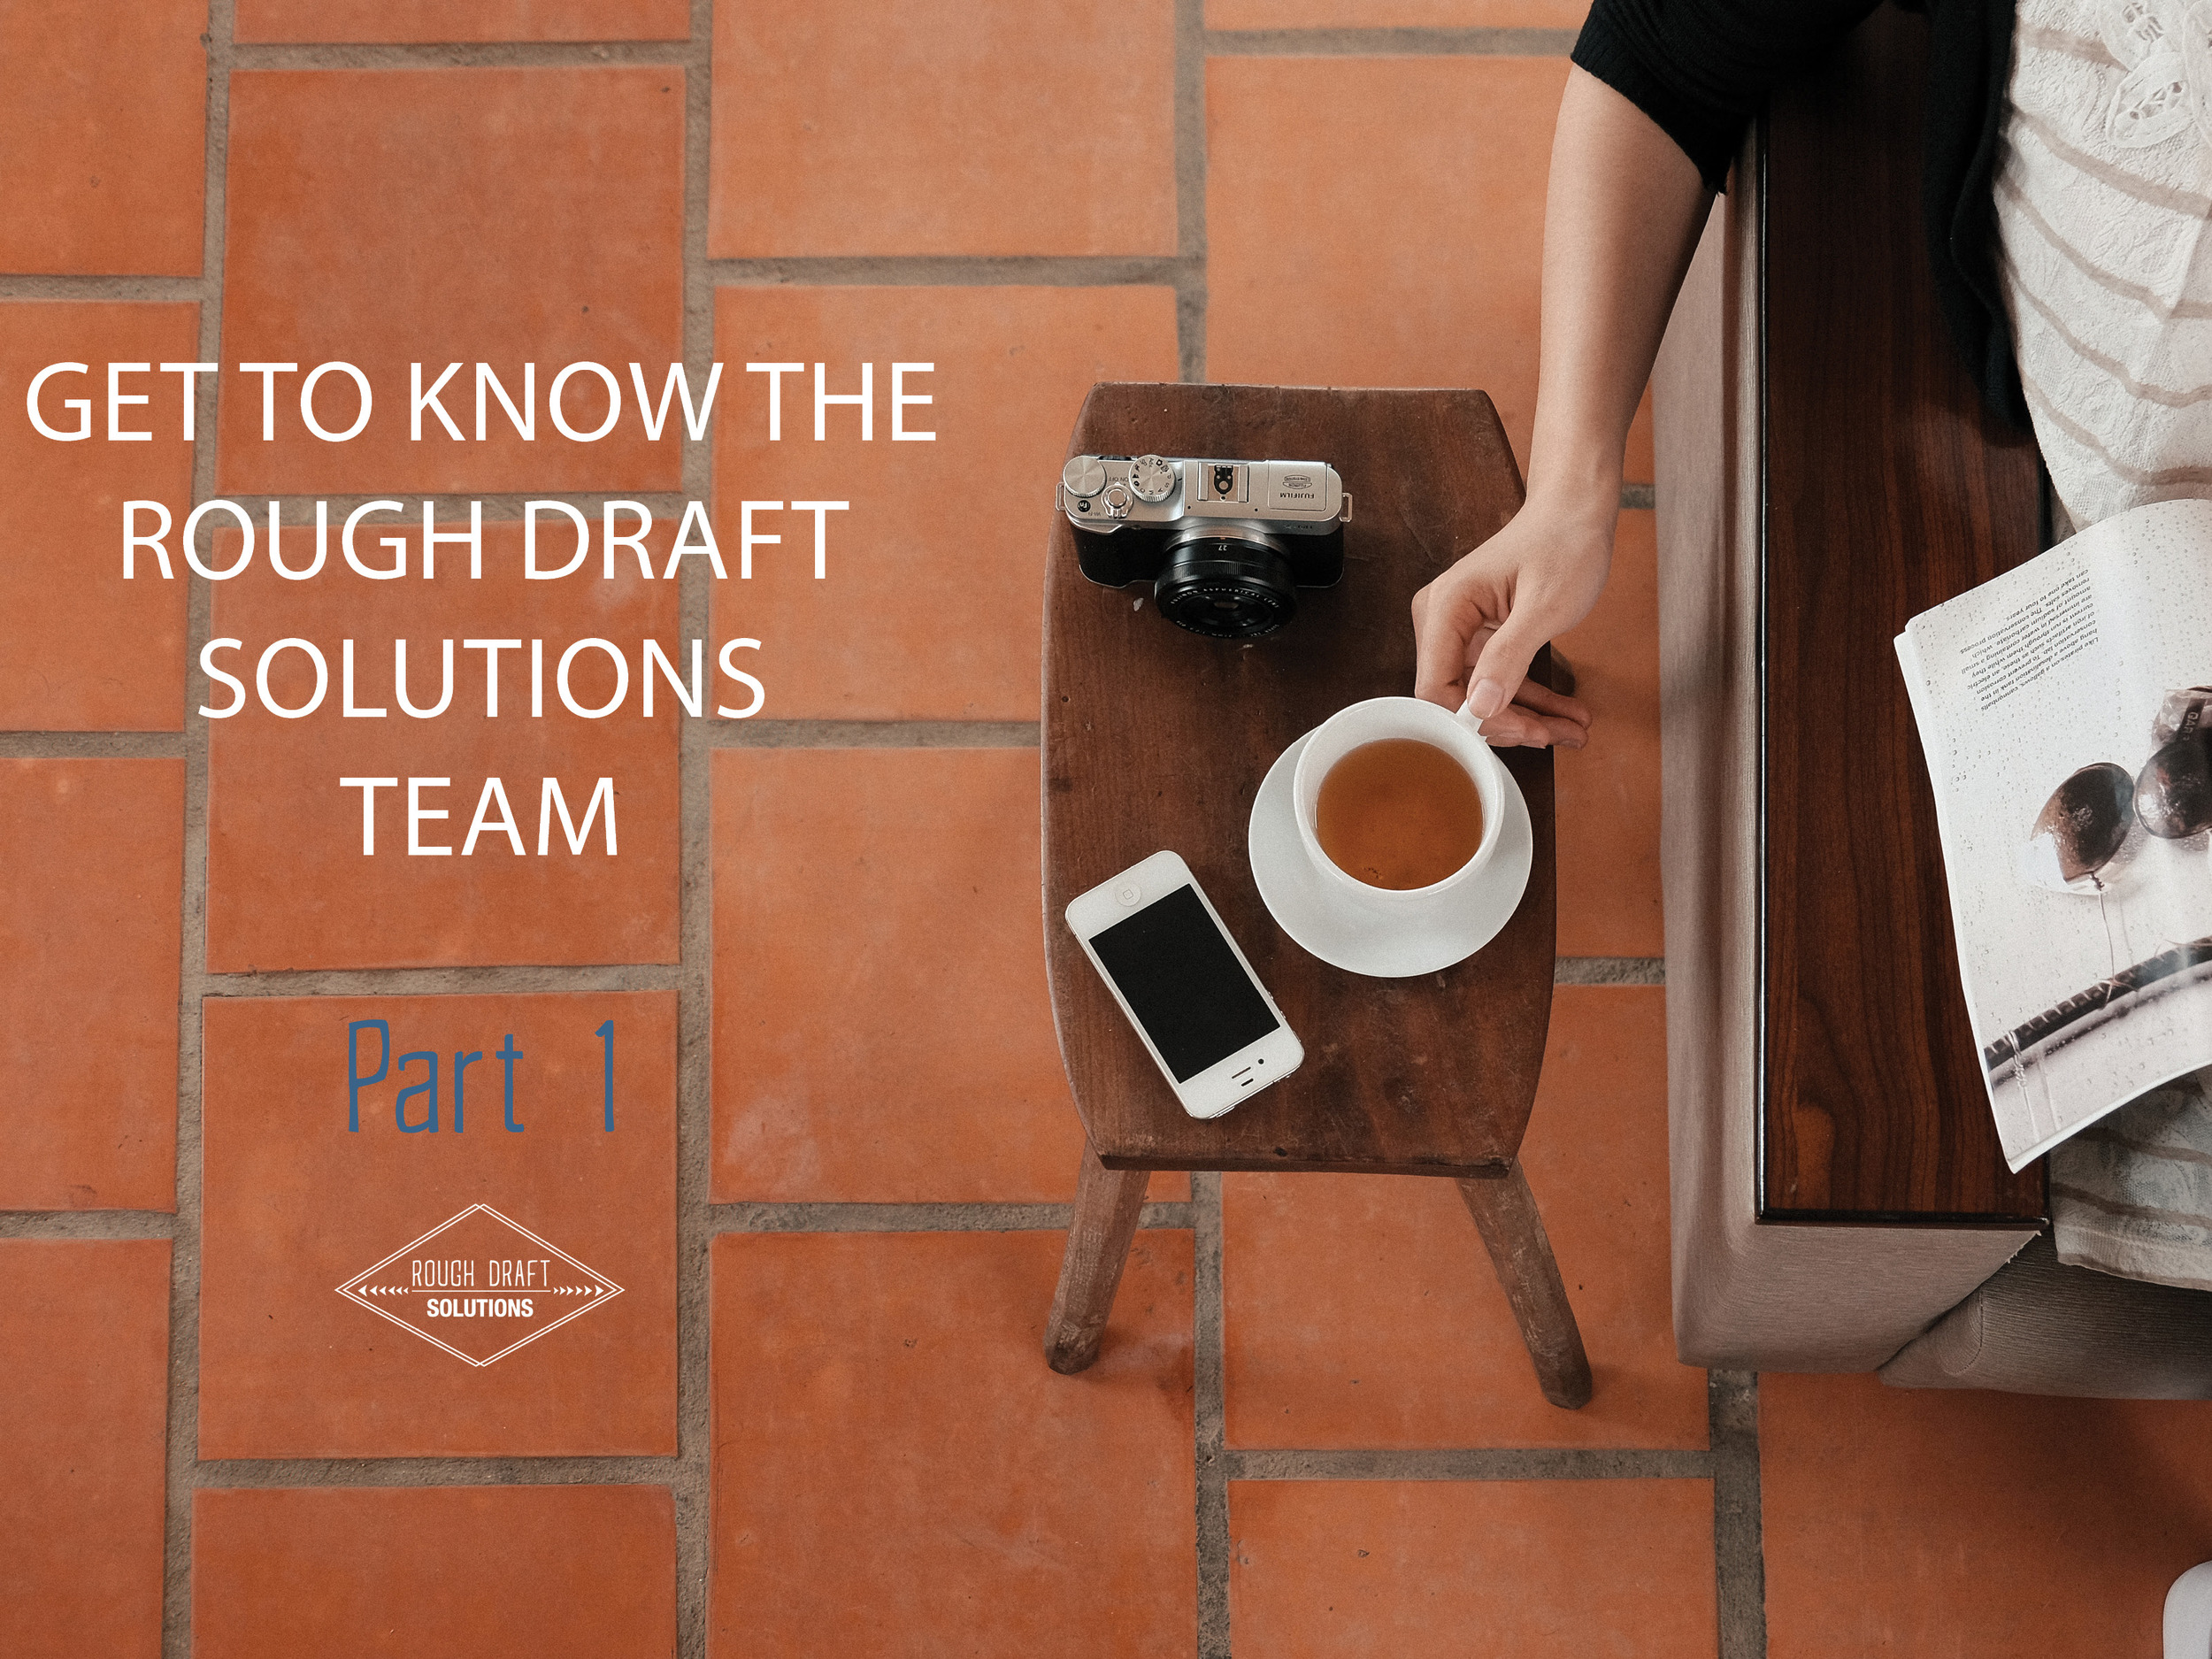 Get to Know the Rough Draft Solutions Team